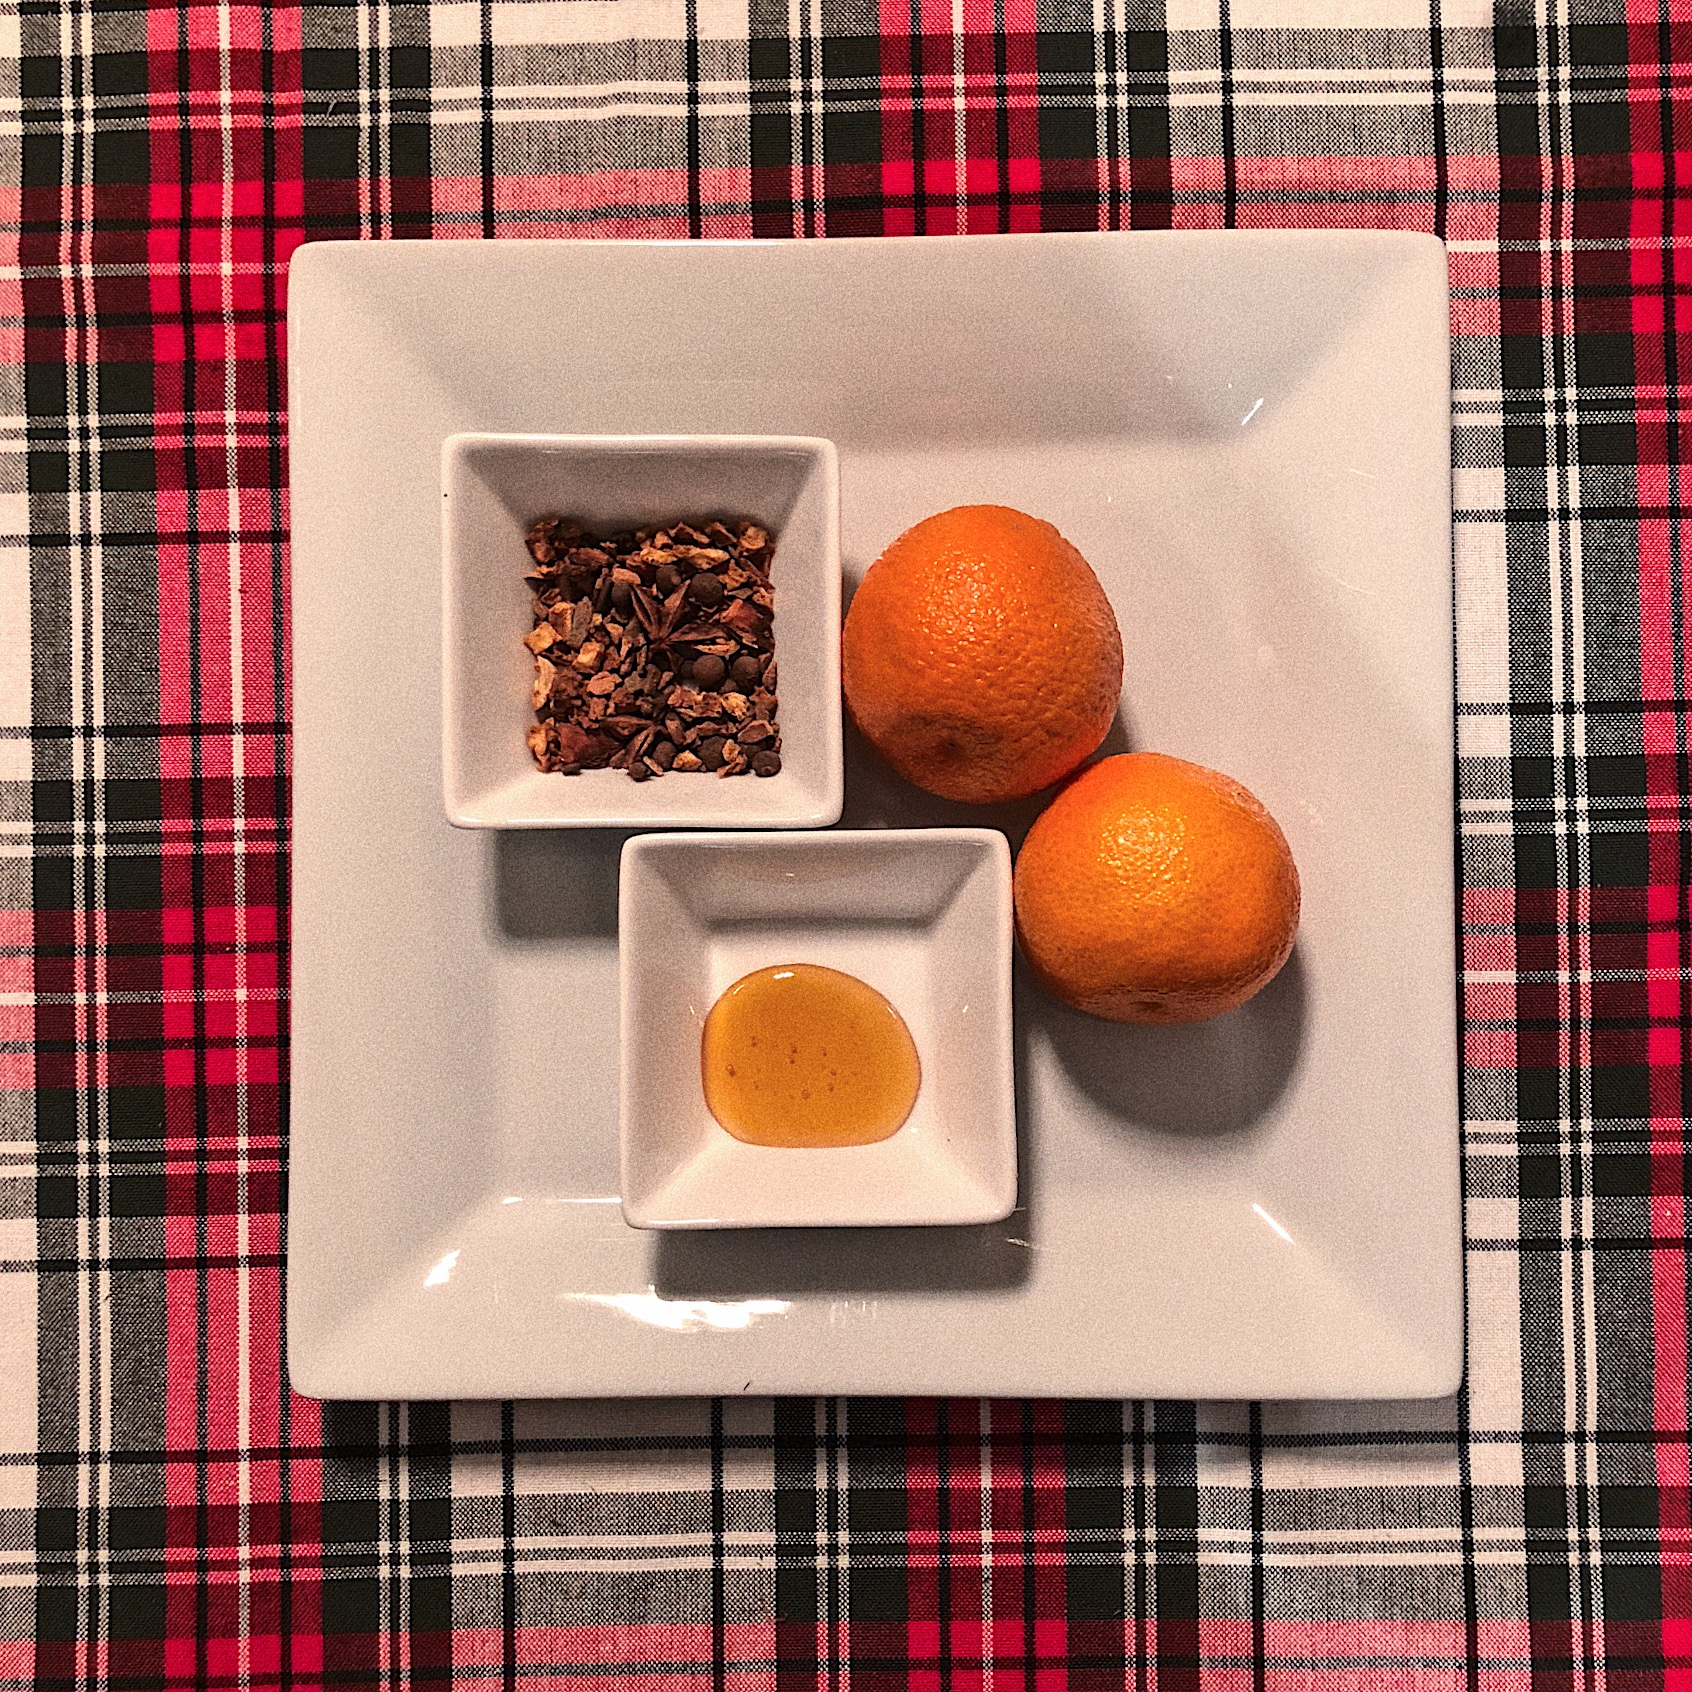 Mulling Spices are a mix of All Spice, Cinnamon, Cloves, Orange Peels, and Nutmeg. I like to add a few extra orange peels to the mix to enhance the flavor. Bonus- simmering this on the stove will make your house smell AMAZING.